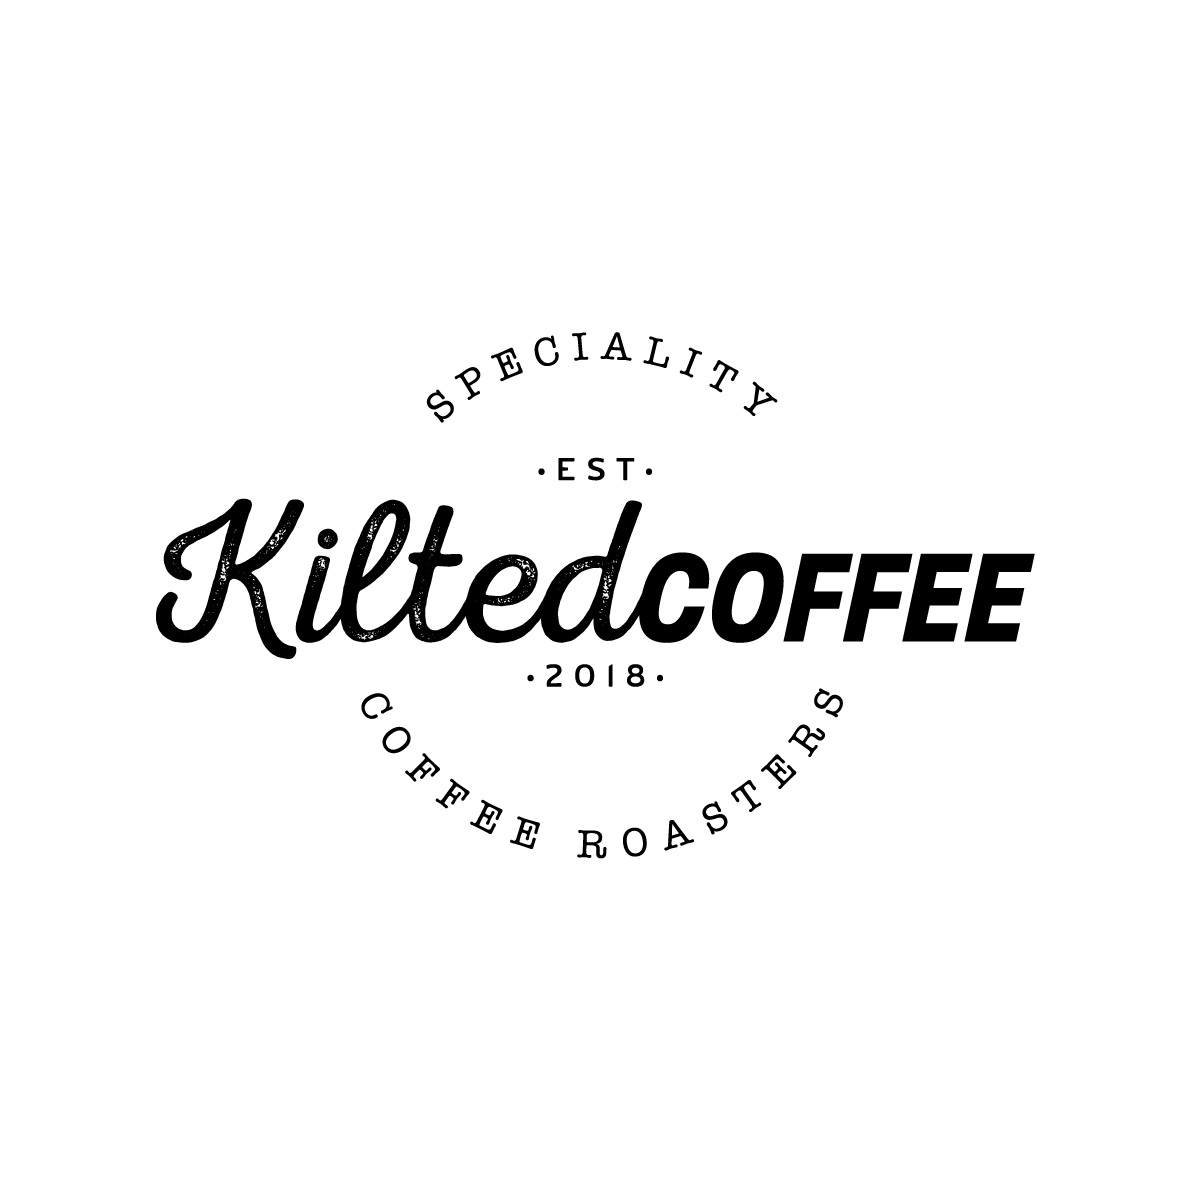 Kilted Coffee